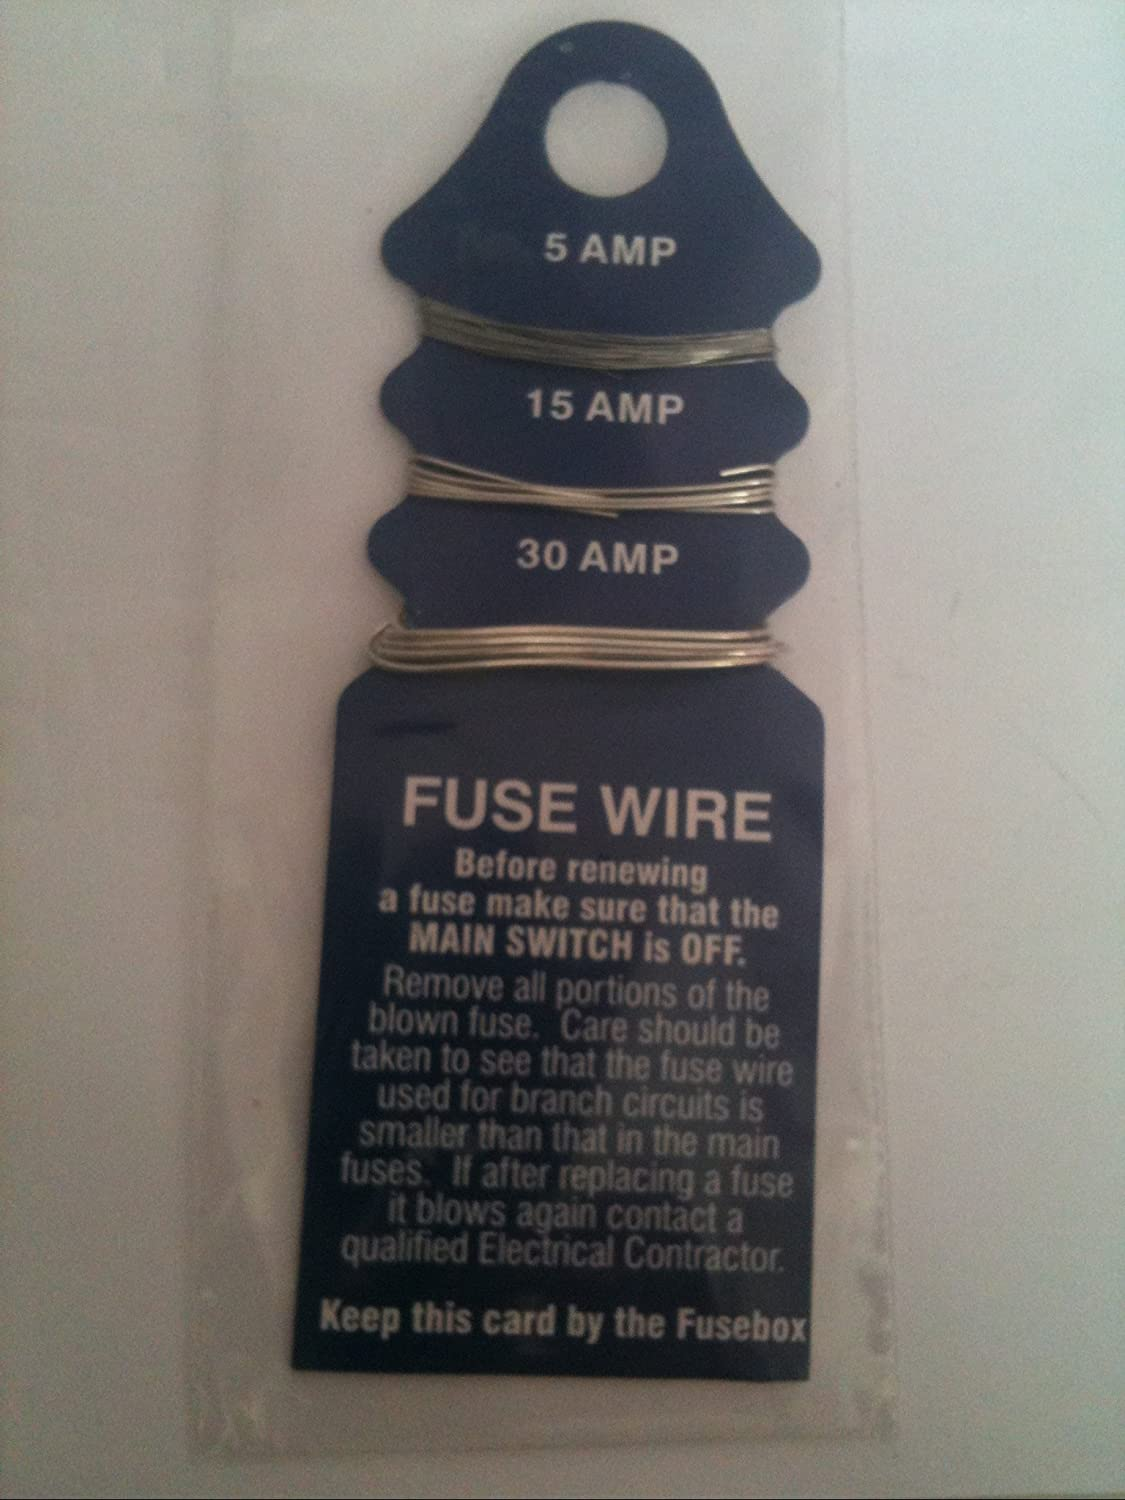 5,15,30amp. HOUSEHOLD FUSEWIRE